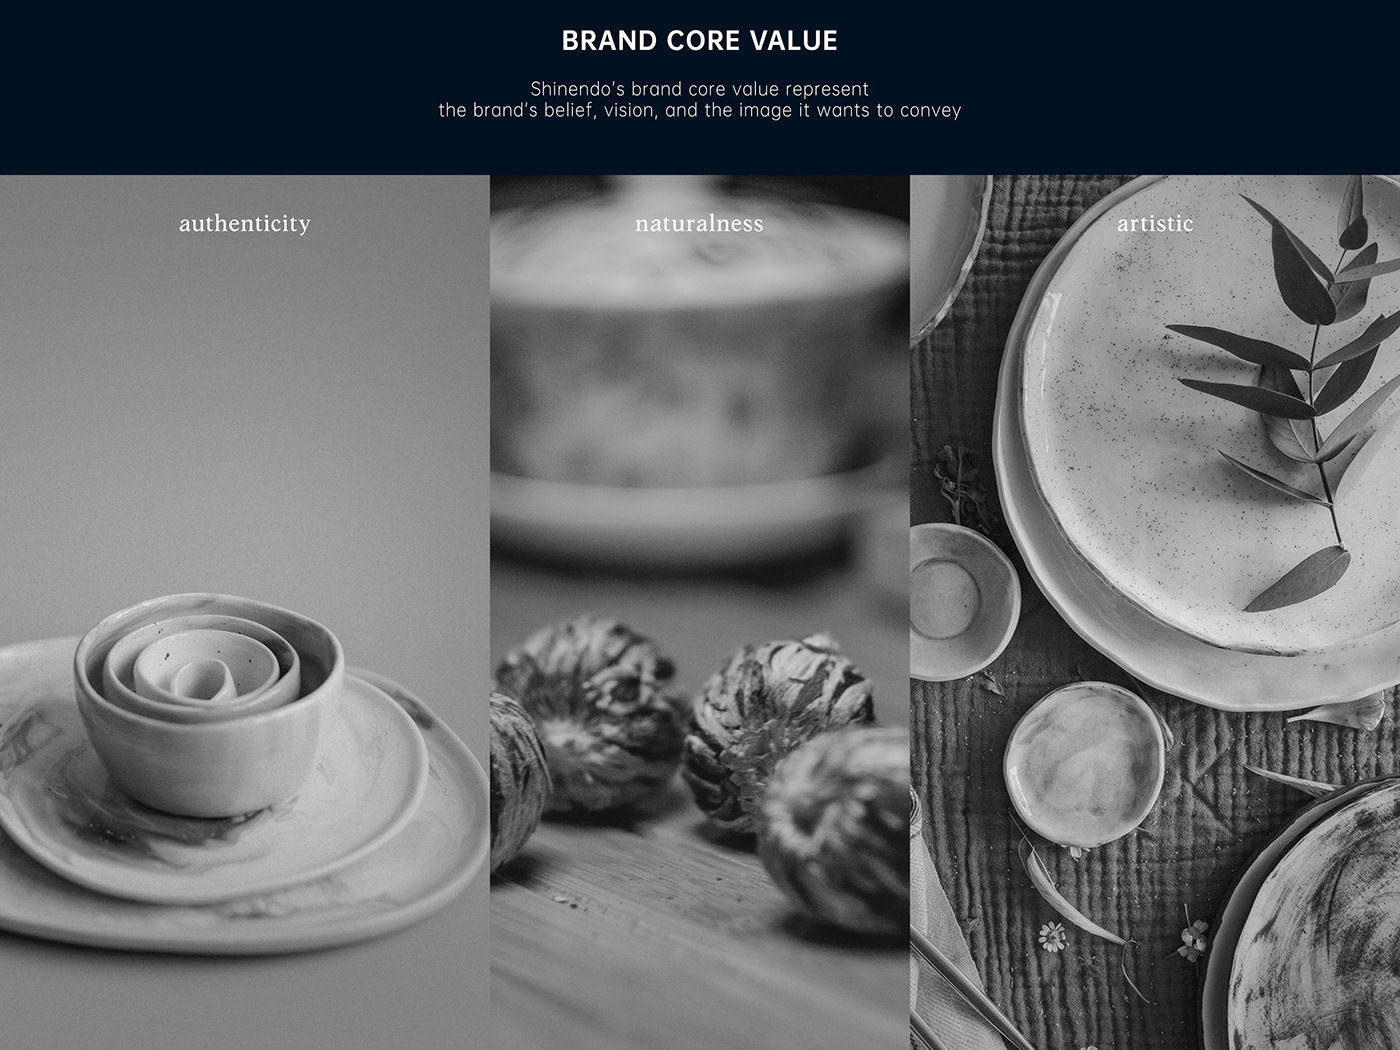 The core values defined for a branding project